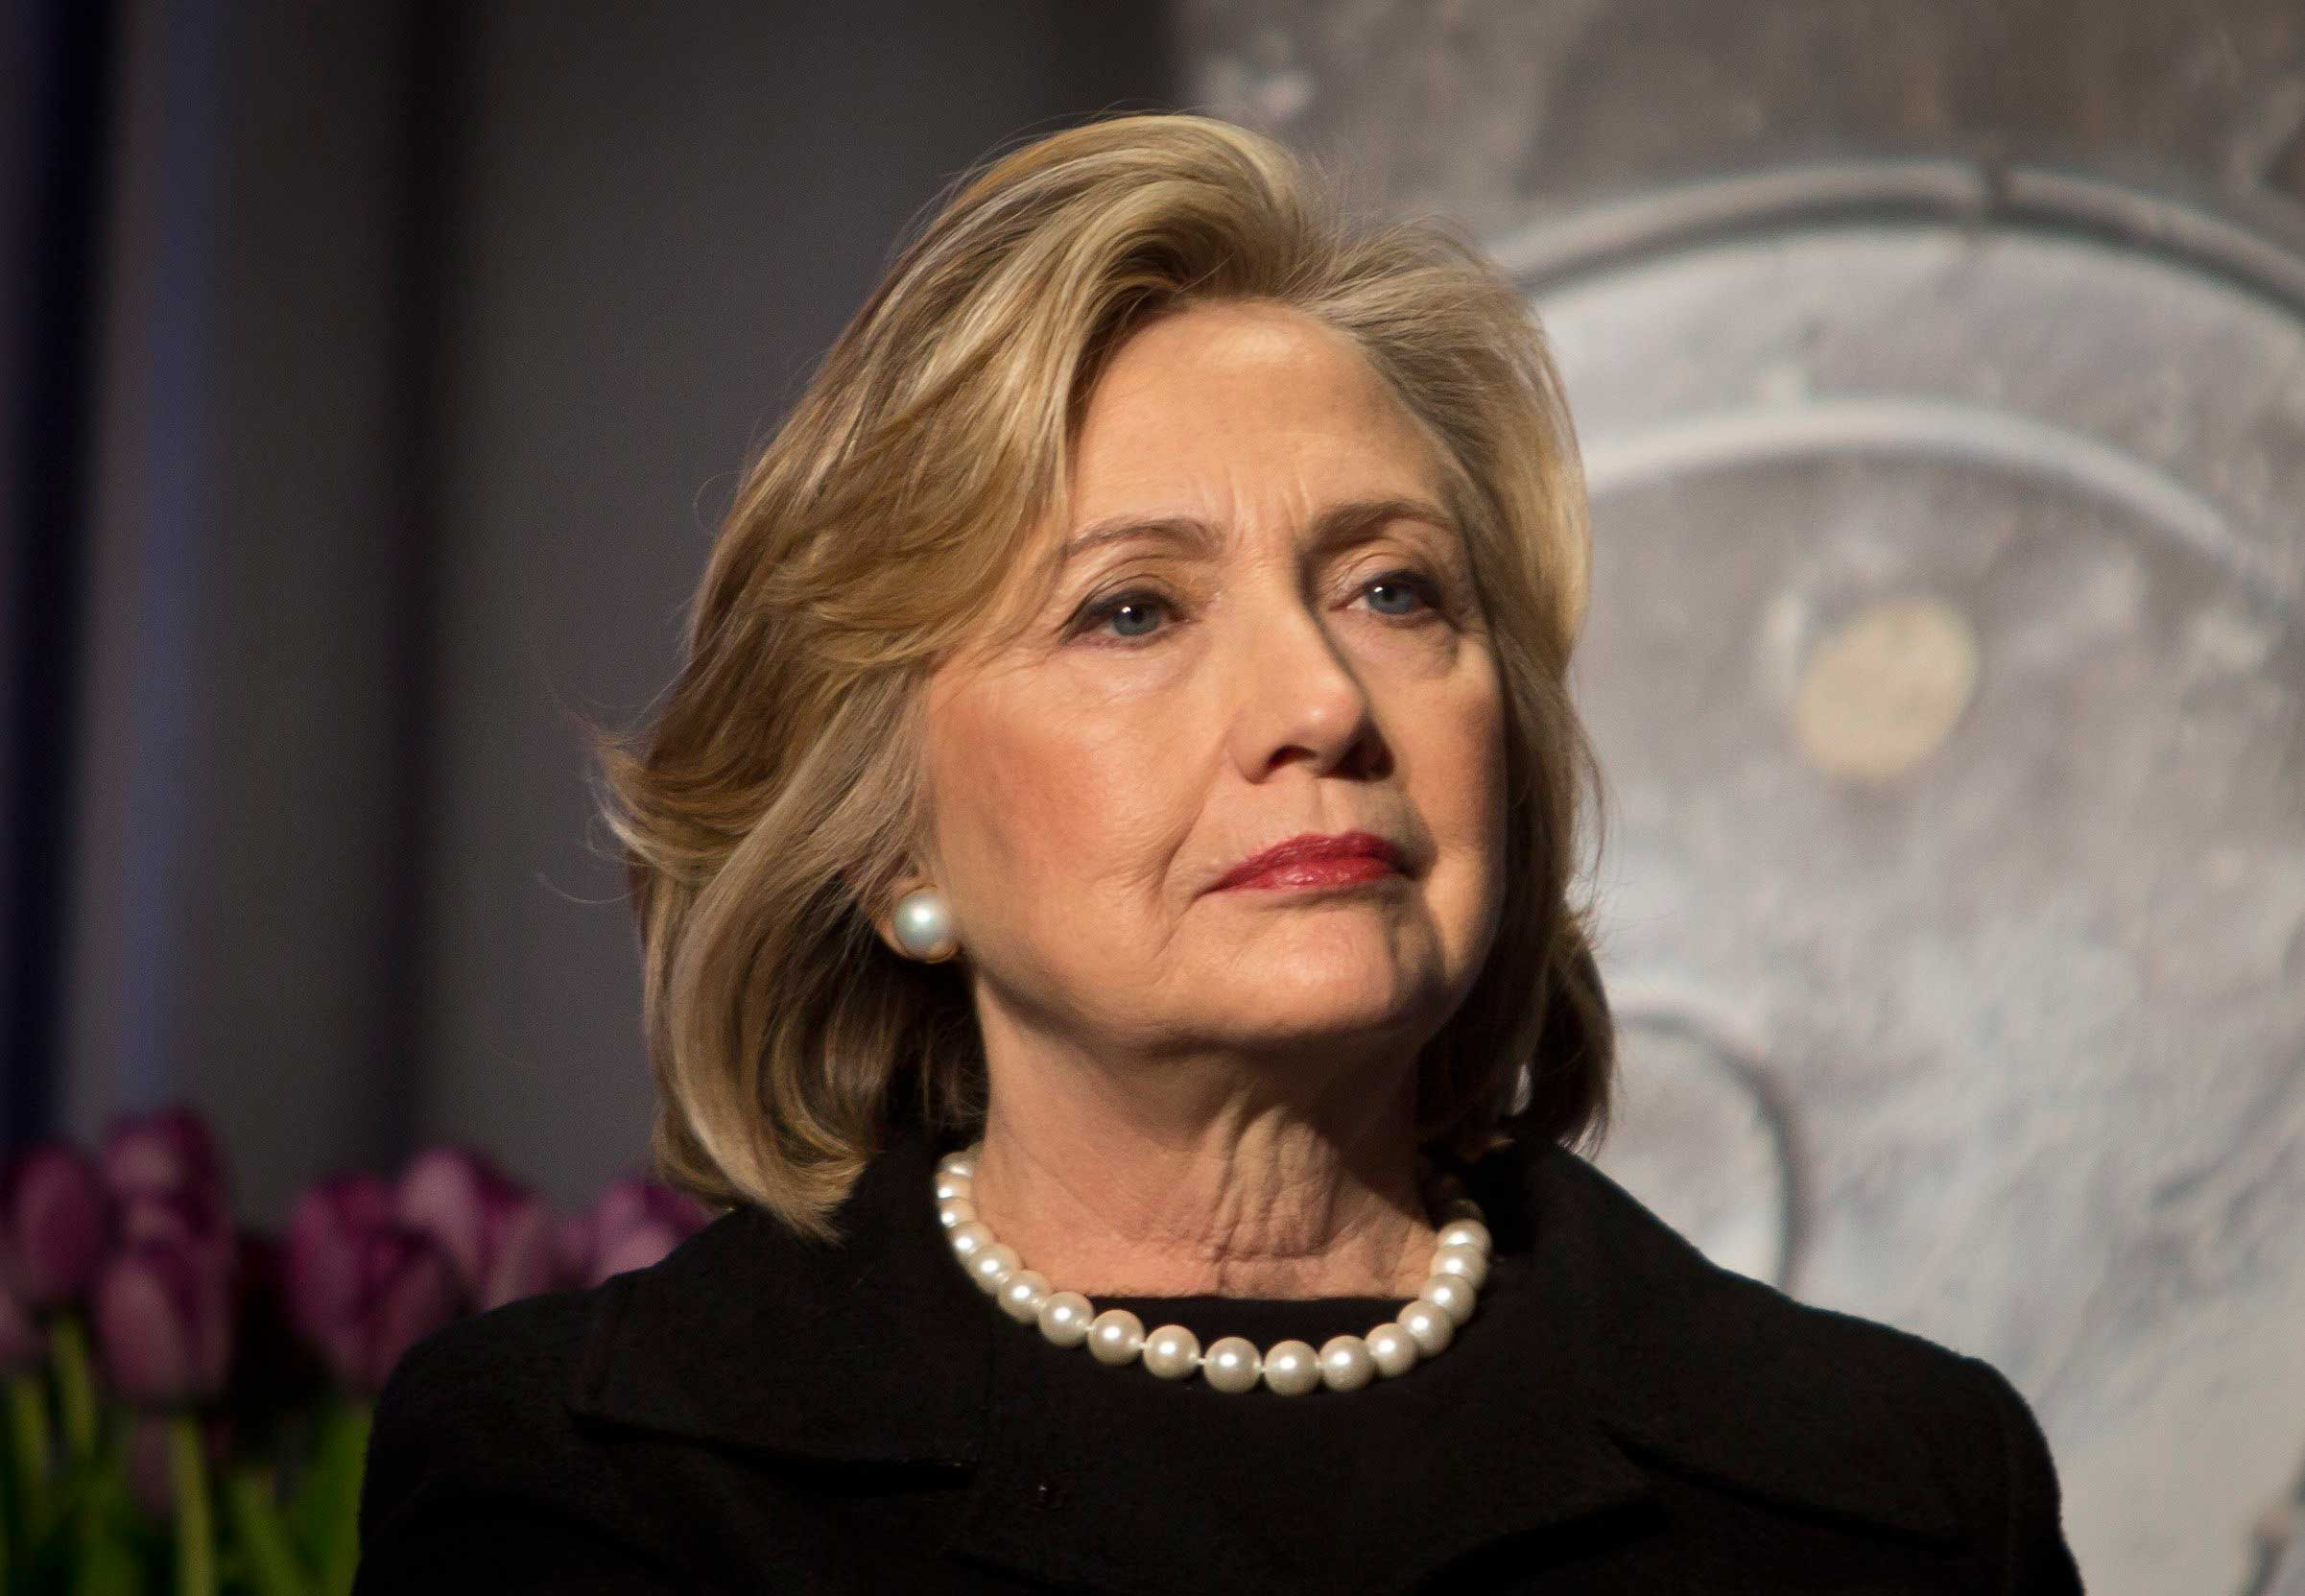 Hillary Rodham Clinton listens before delivering remarks at an event in New York City on Nov. 21, 2014.